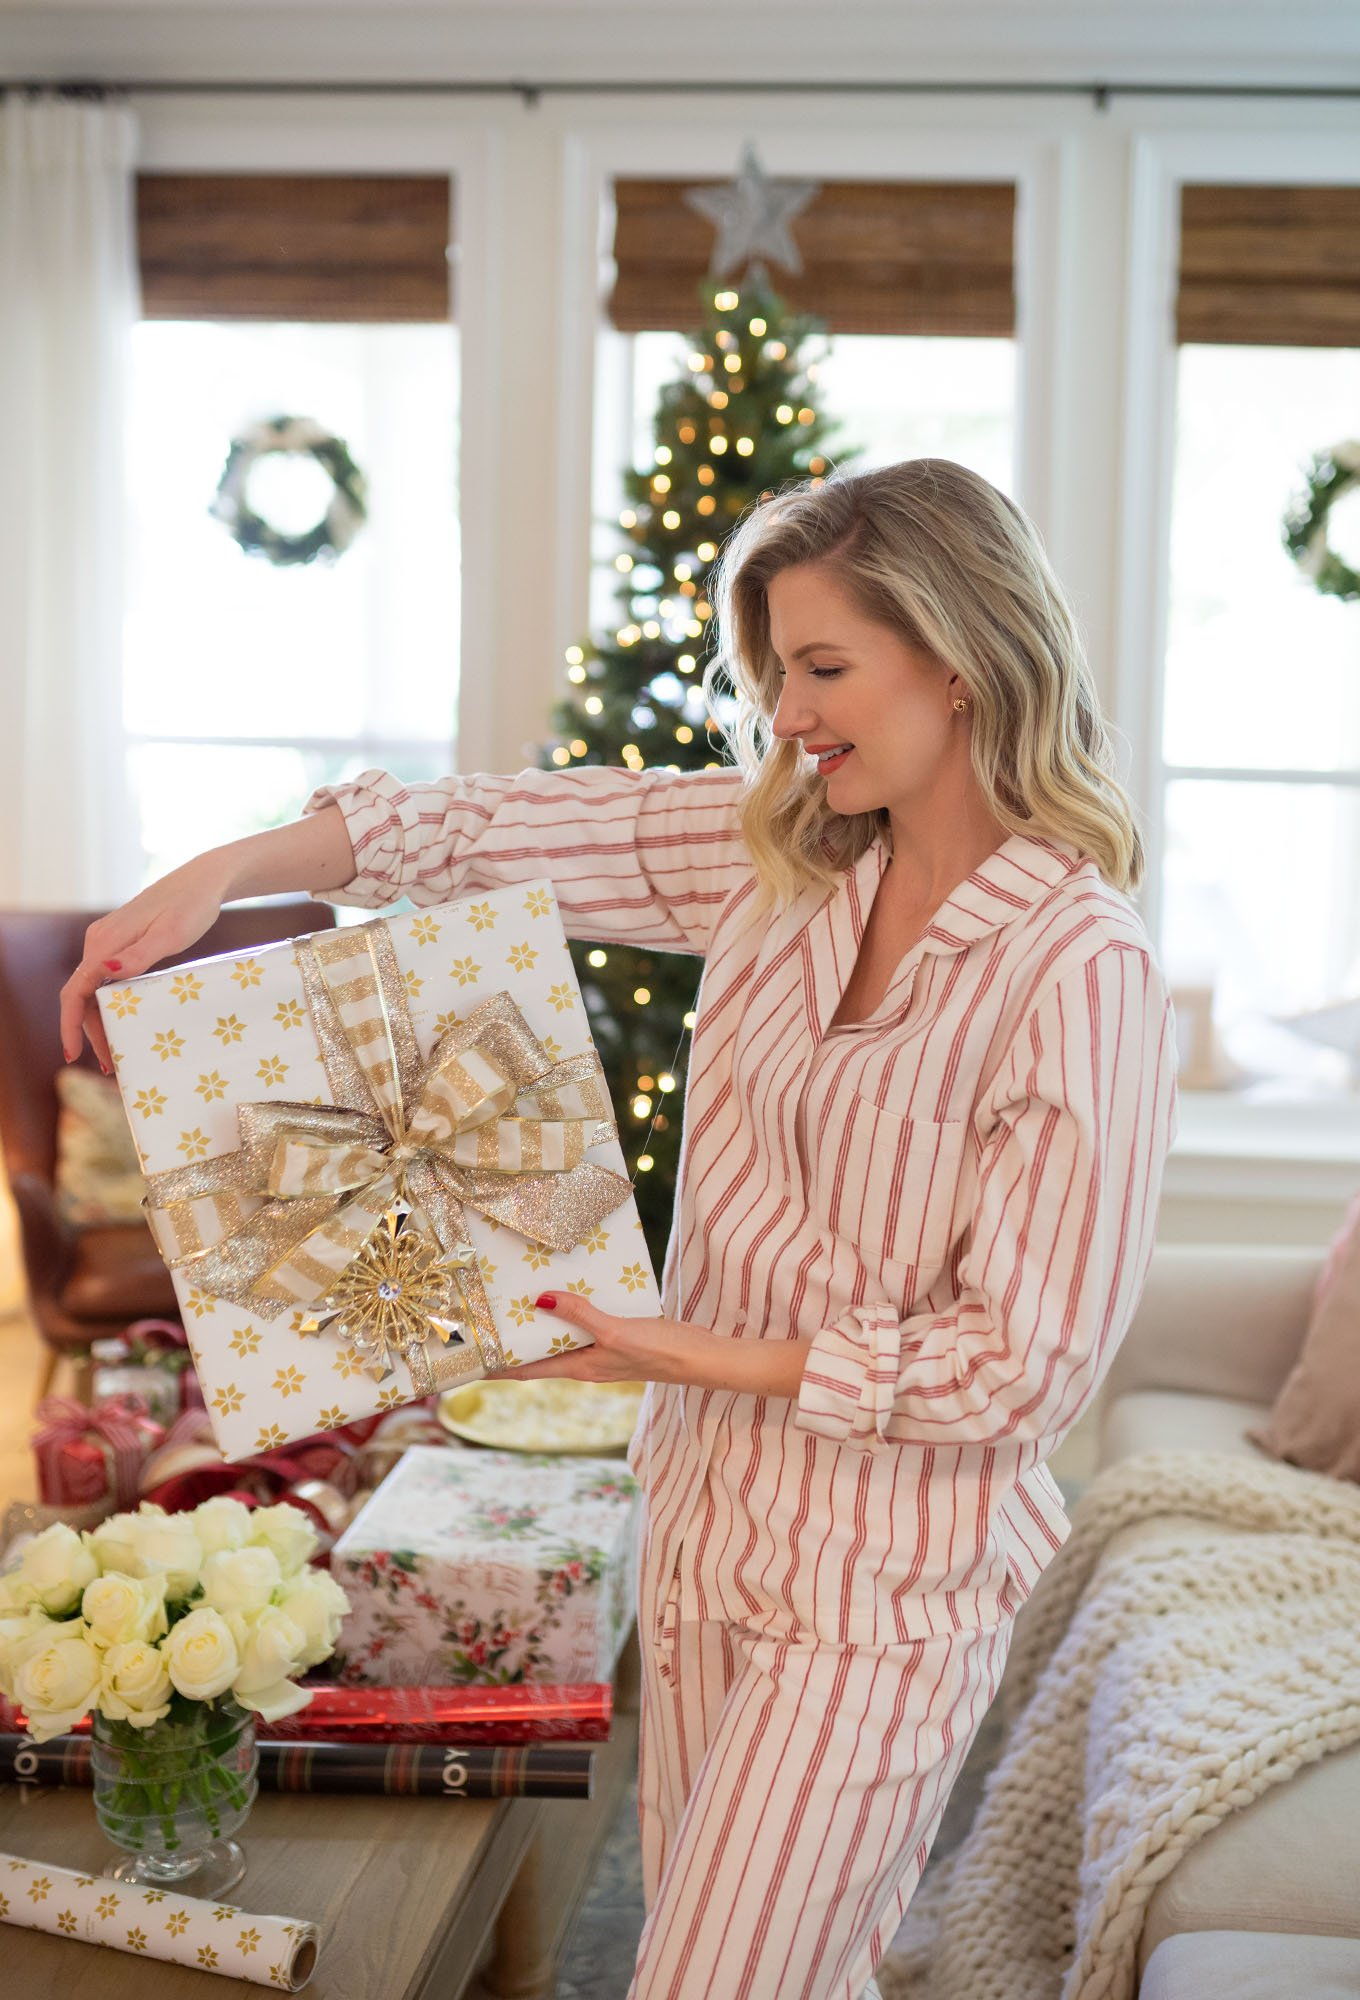 Ashley Brooke shows how to wrap a gift